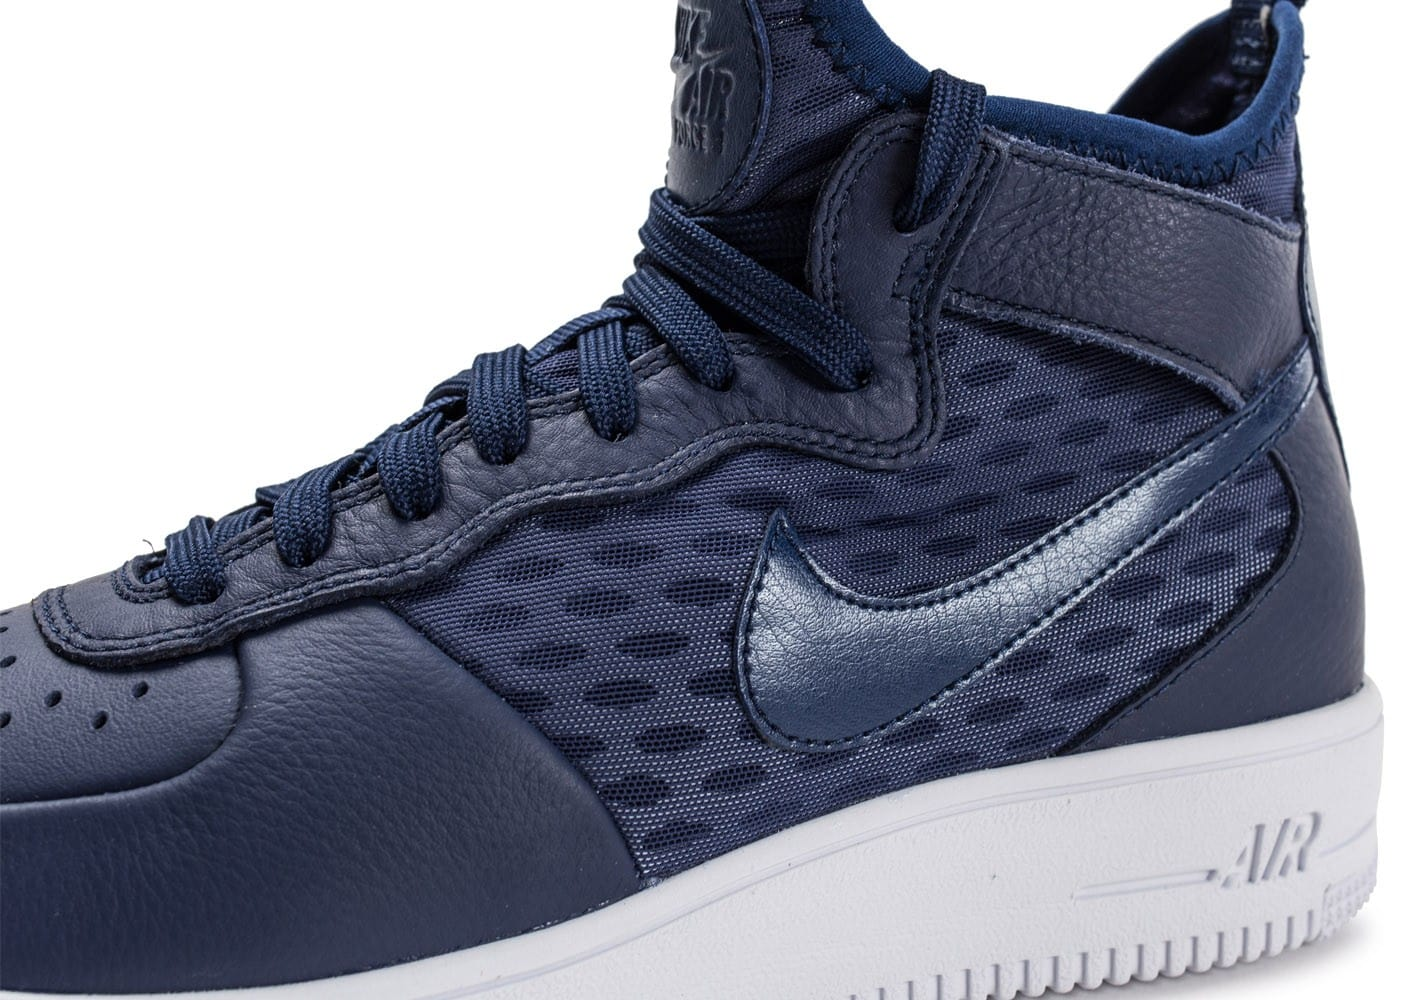 eaa49e922600 Nike Air Force 1 UltraForce Mid bleue - Chaussures Baskets homme ...